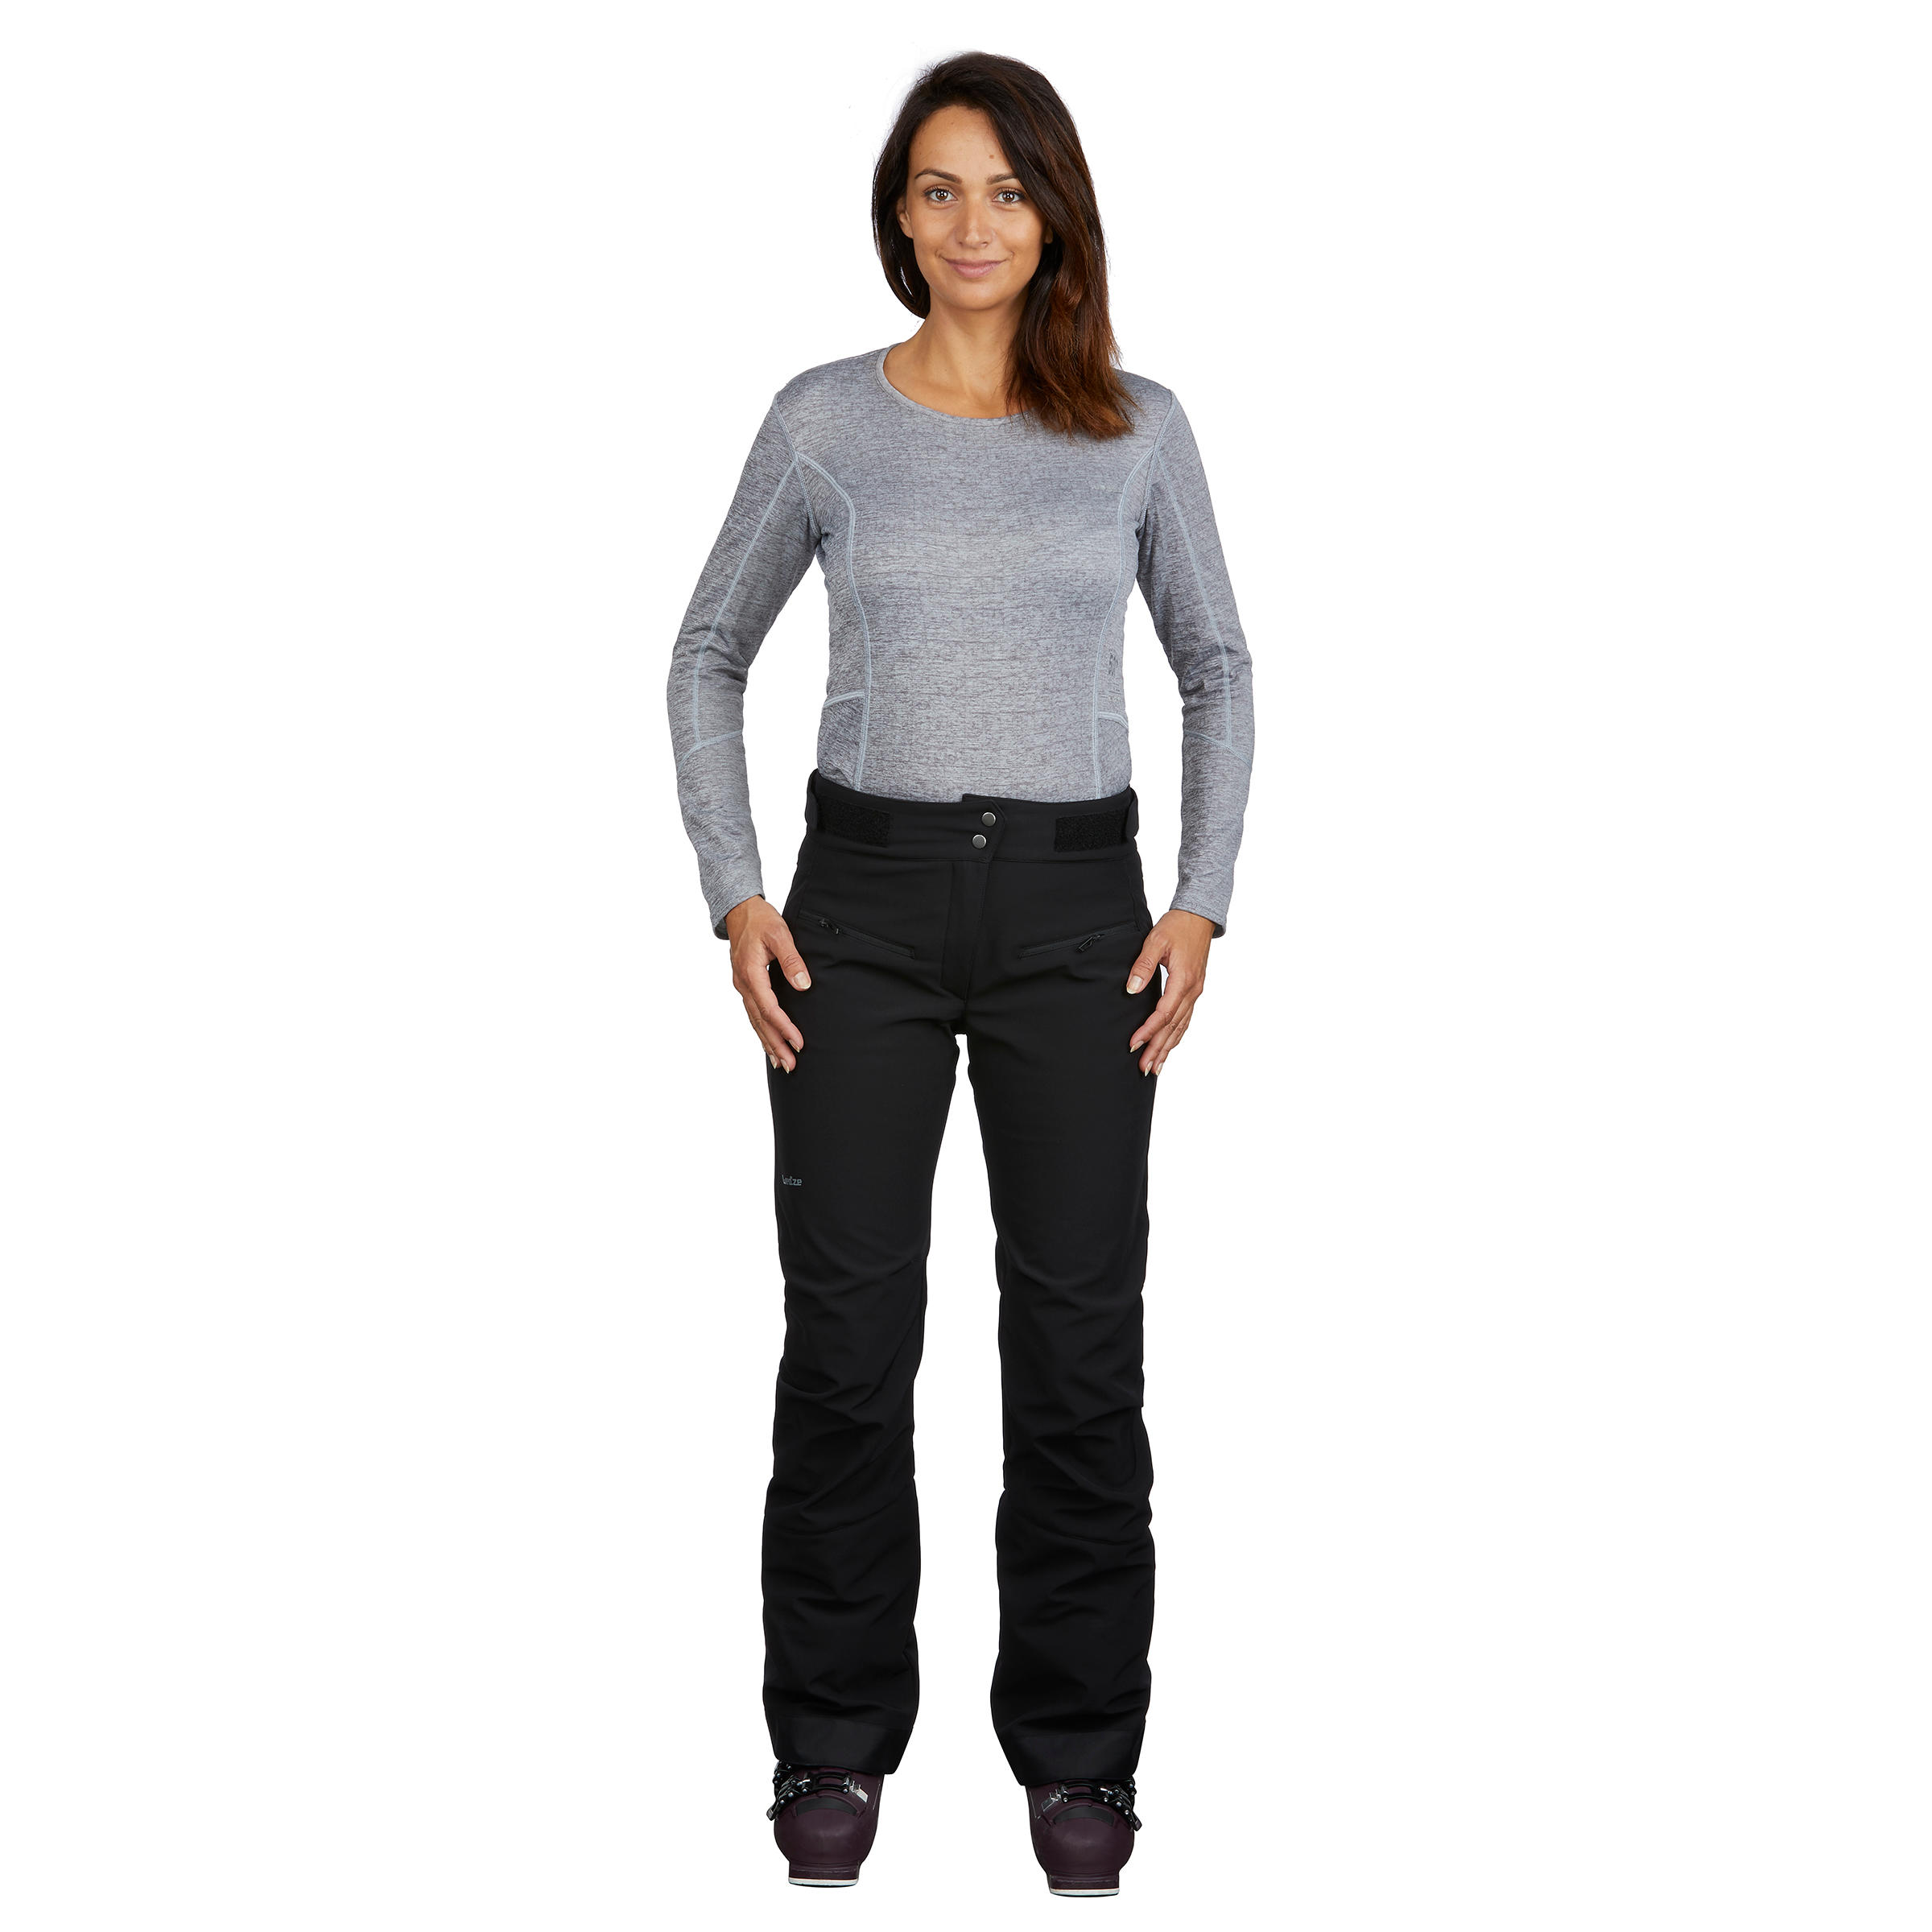 Women's Trail Skiing Pants Ski-P PA 580 Slim - Black